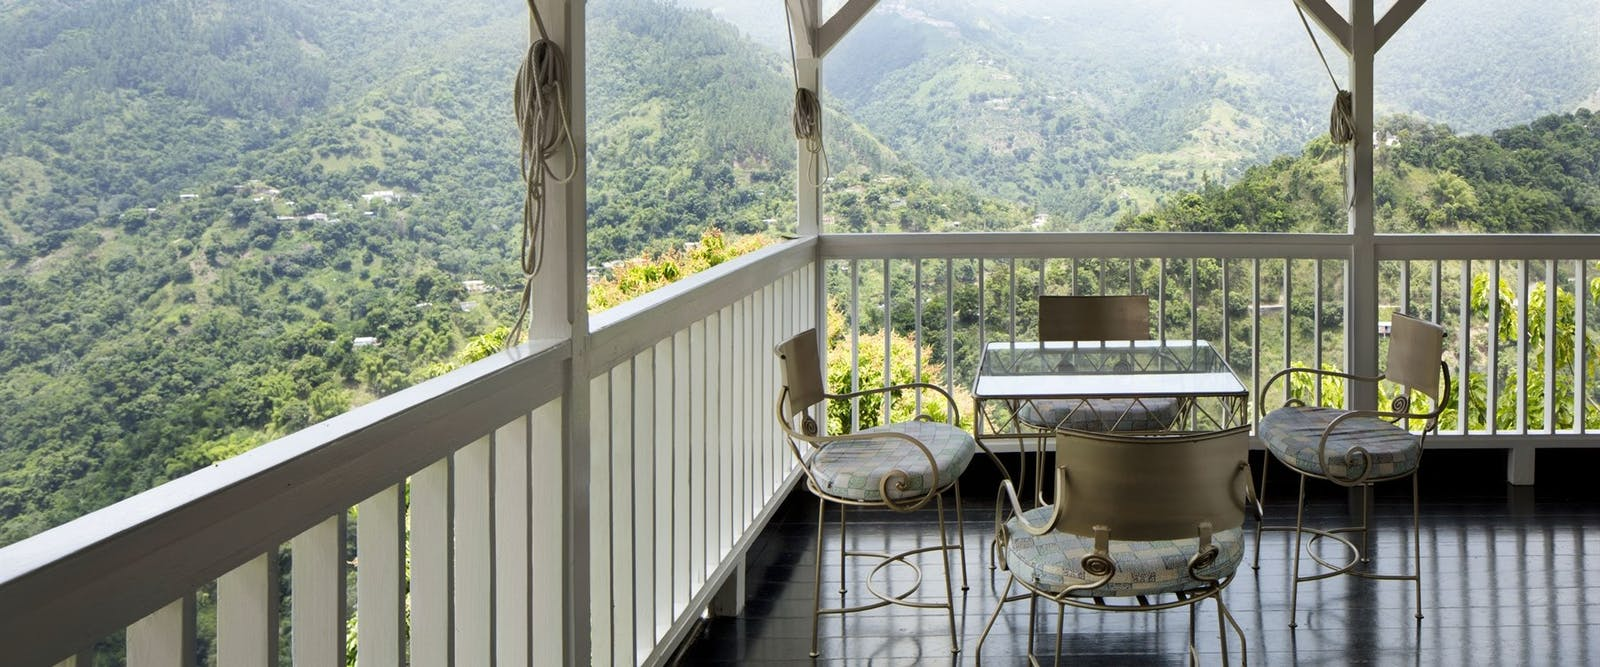 Dine on your private in room verandah at Strawberry Hill, Jamaica